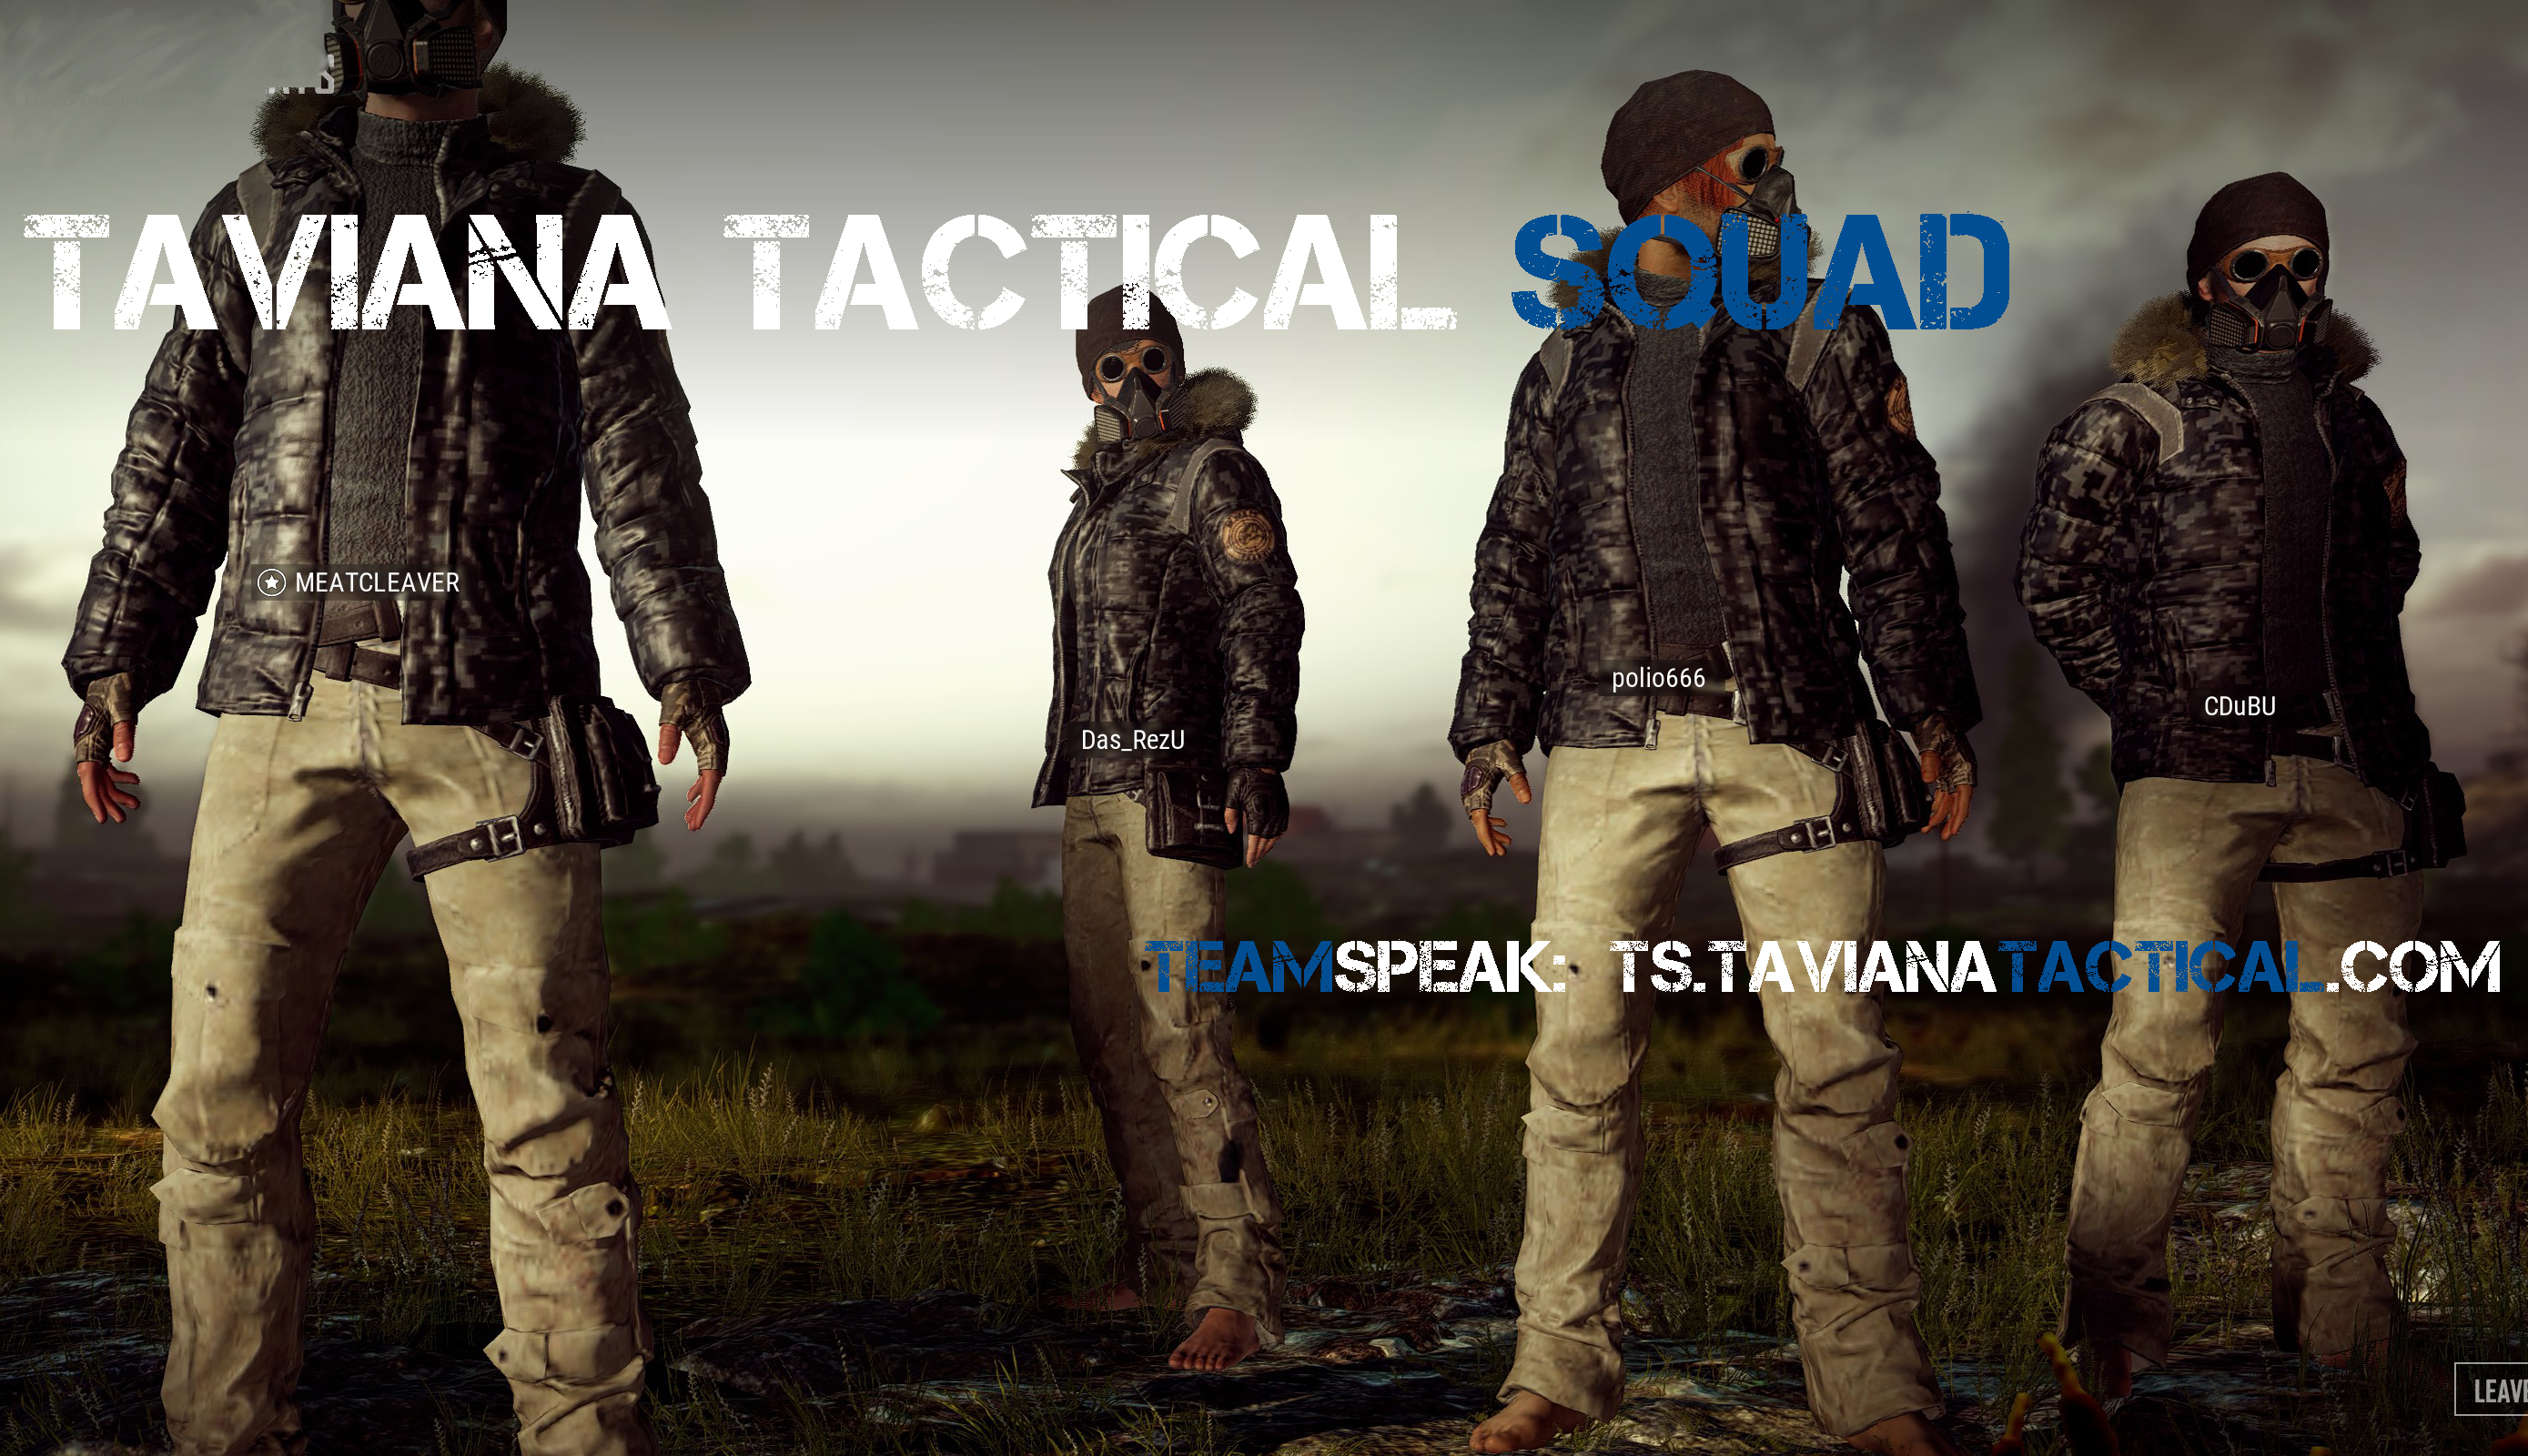 Taviana Tactical Squad